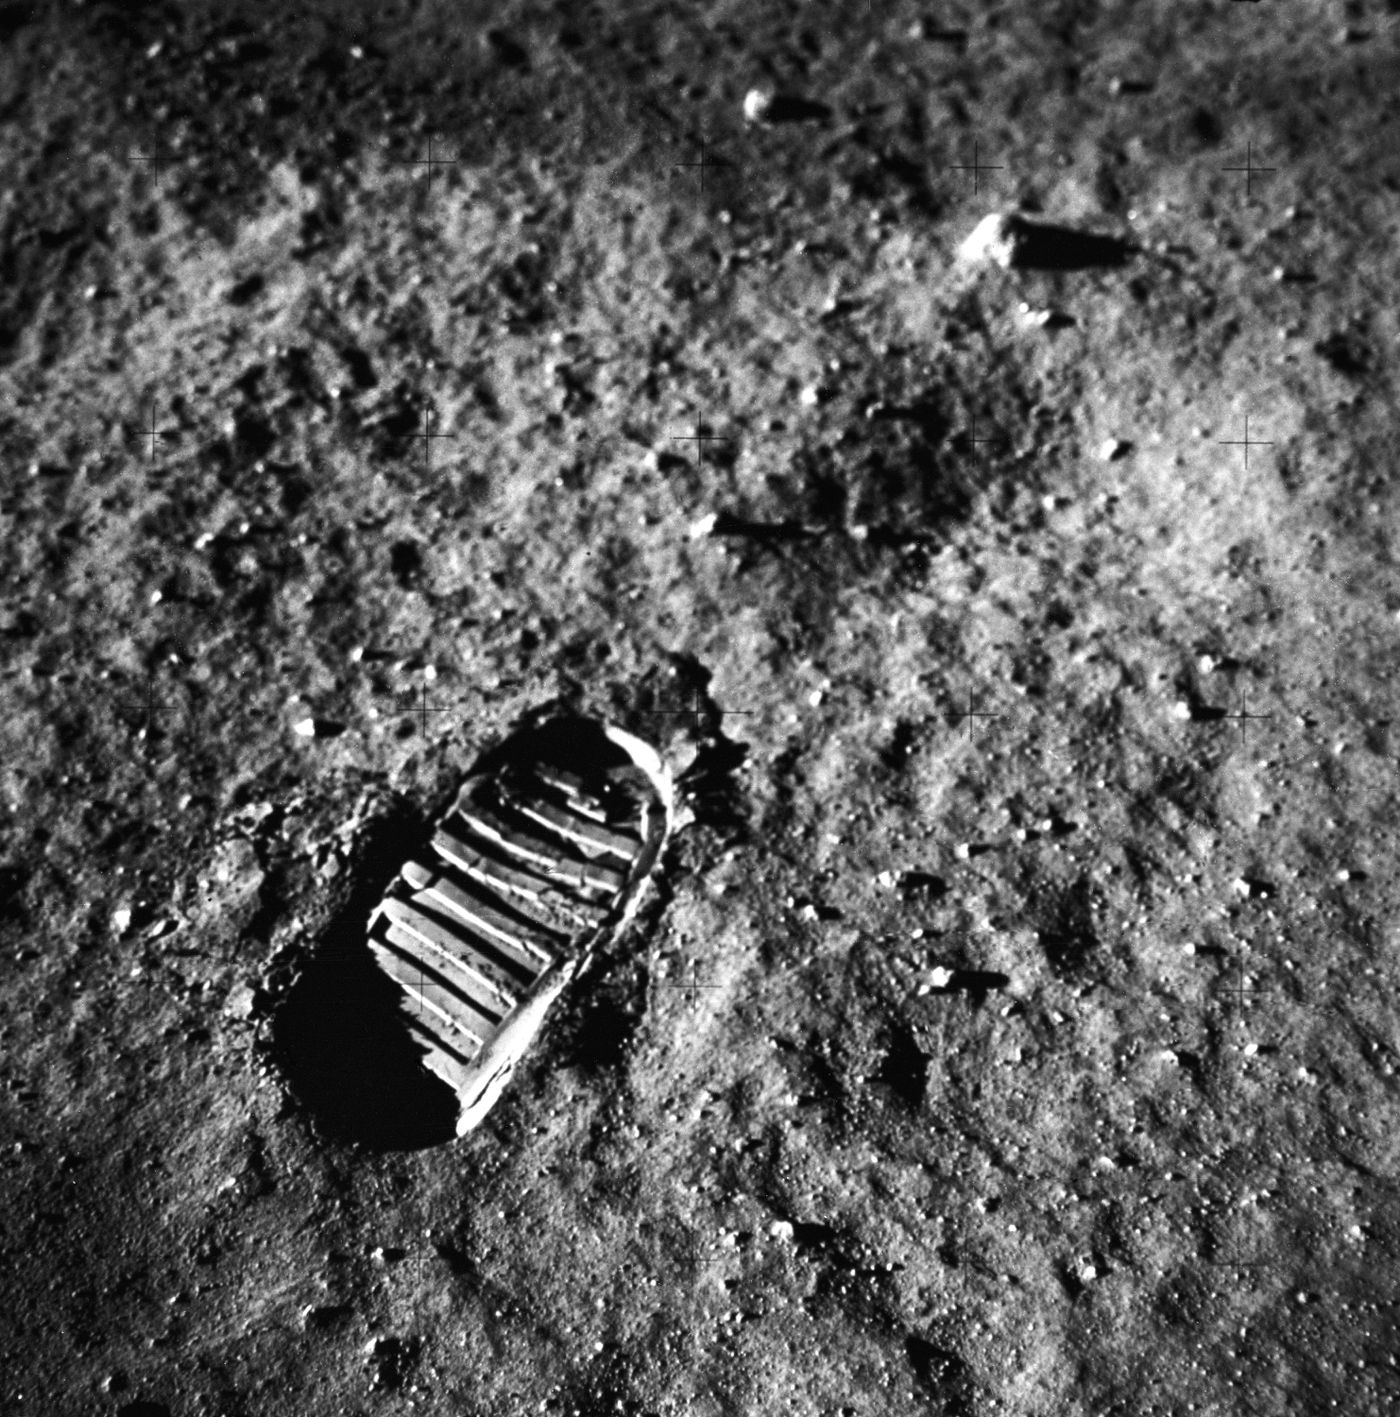 Astronaut footprint in the lunar soil NASA